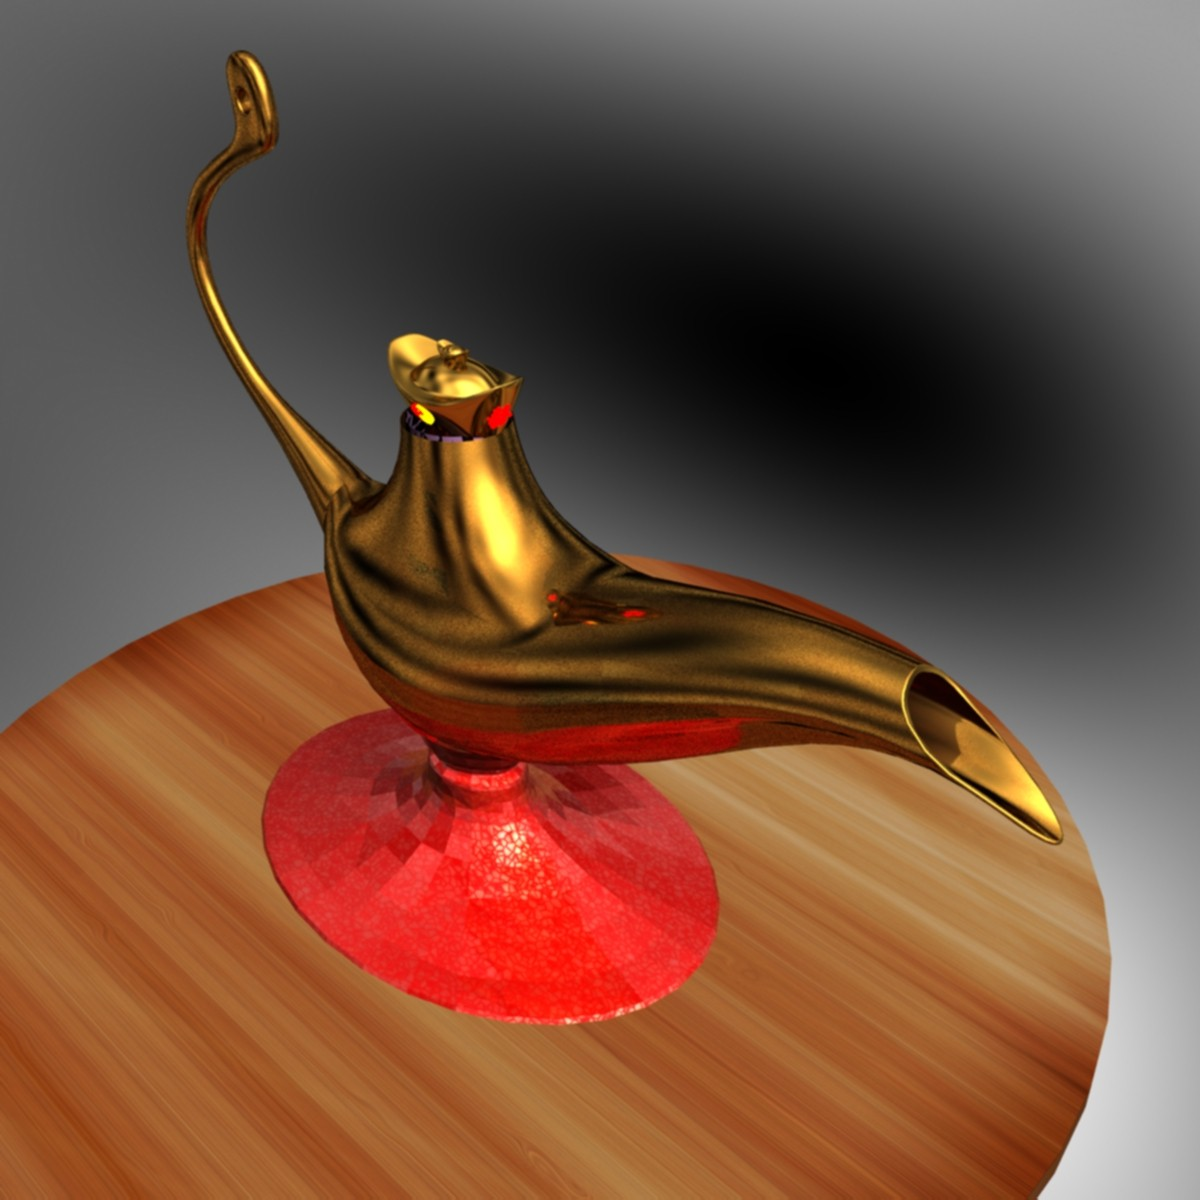 chinese_magic_lamp1.jpg